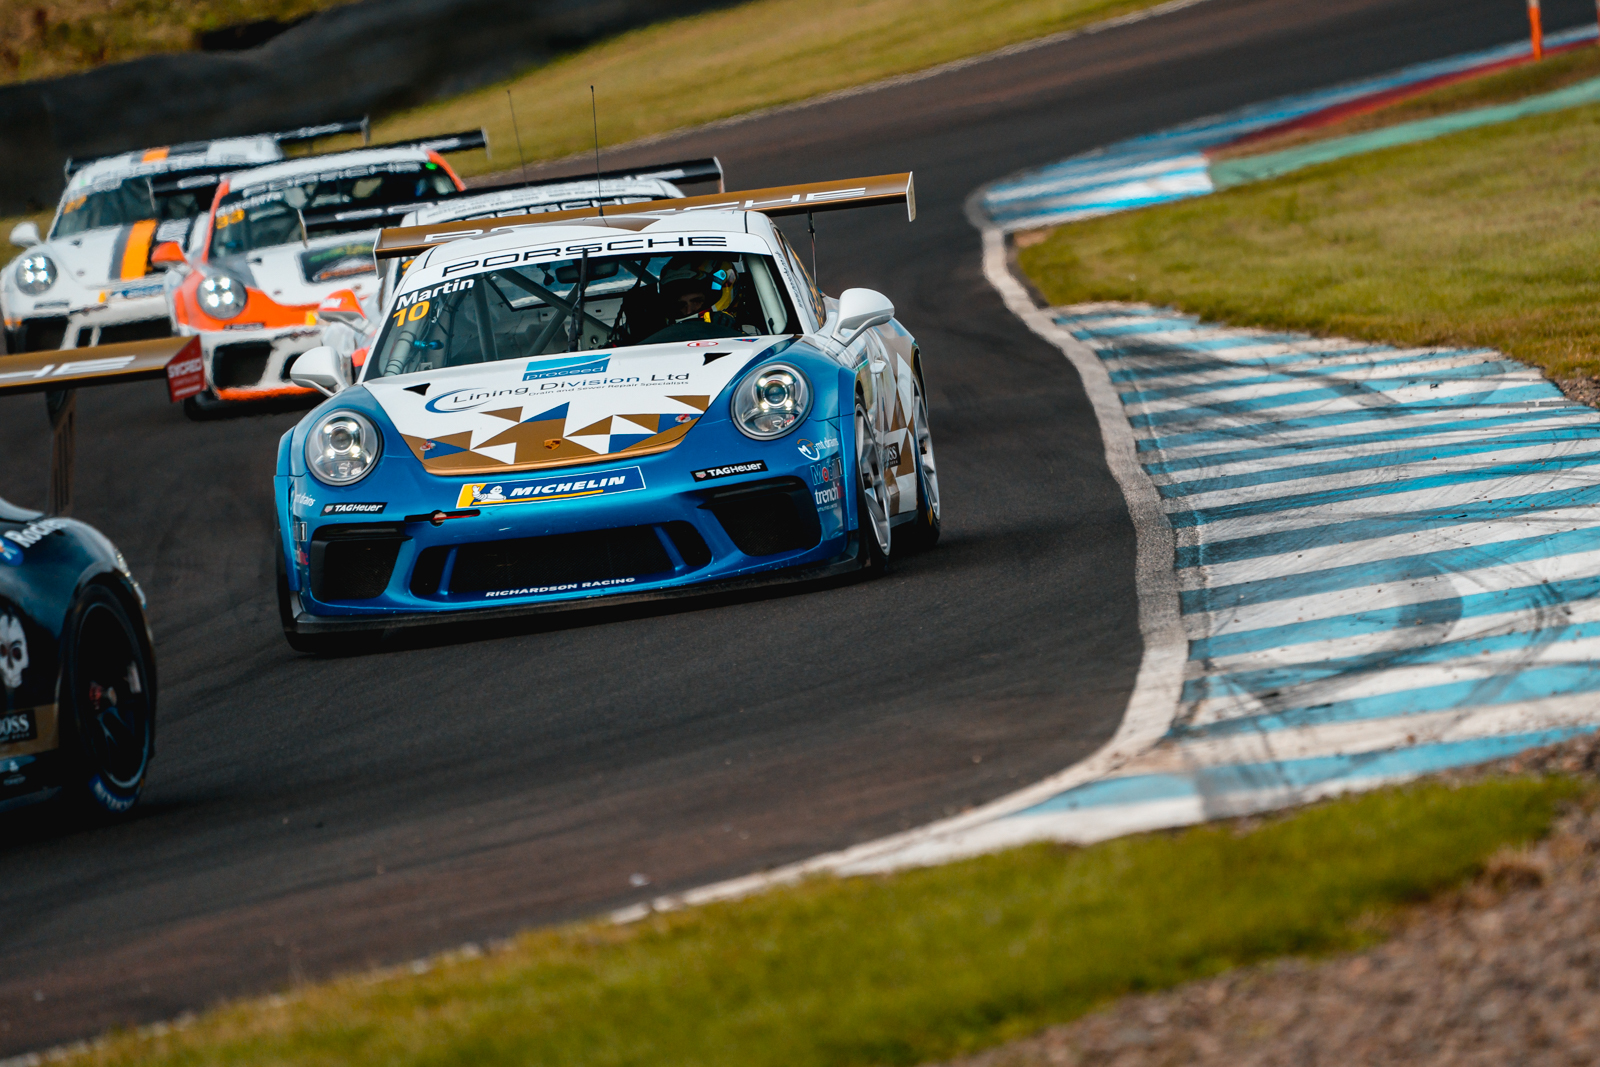 Another double score for Richardson Racing in Scotland